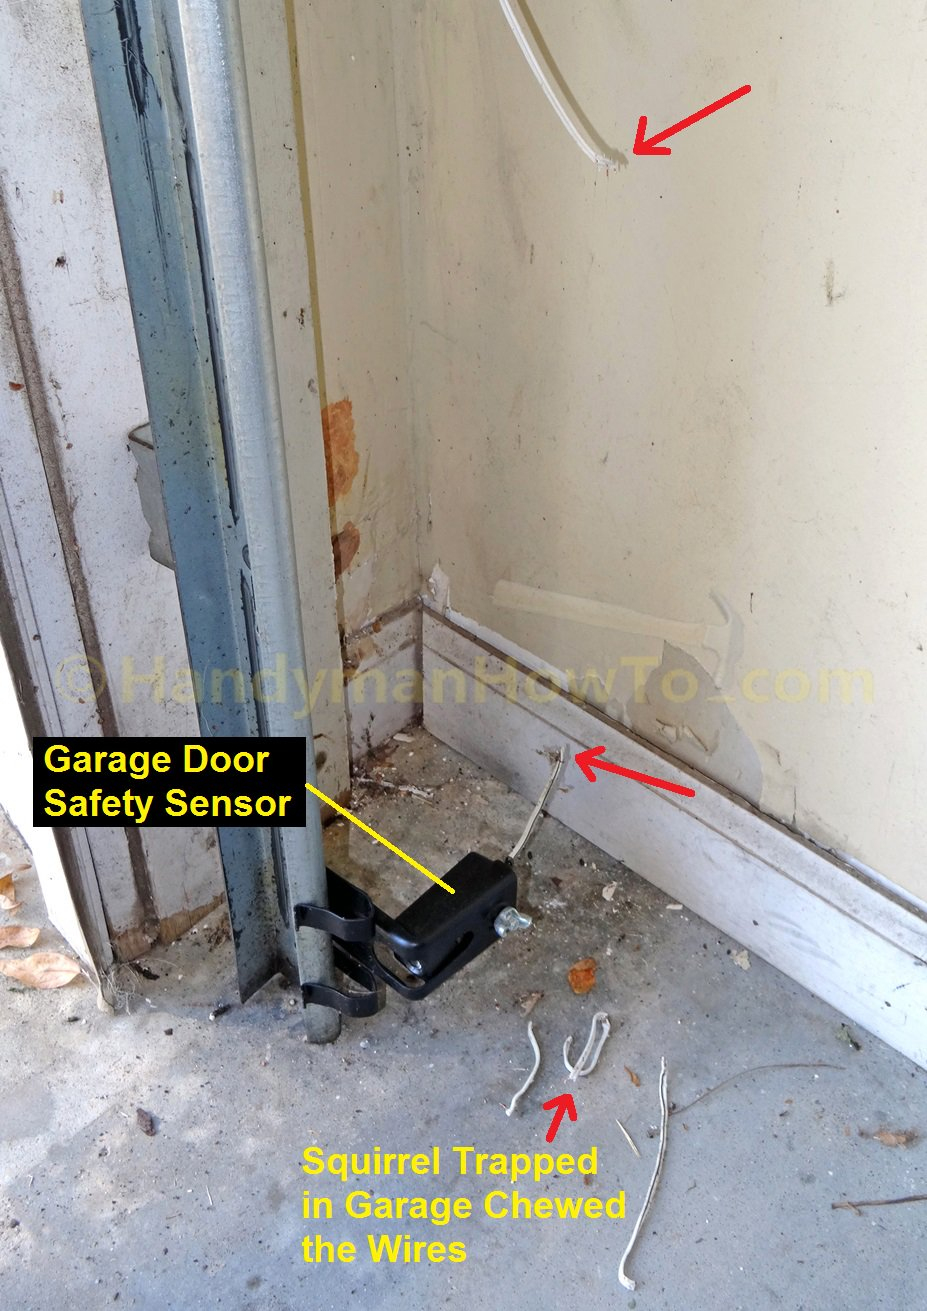 How To Repair Garage Door Safety Sensor Wires - Chamberlain Garage Door Sensor Wiring Diagram